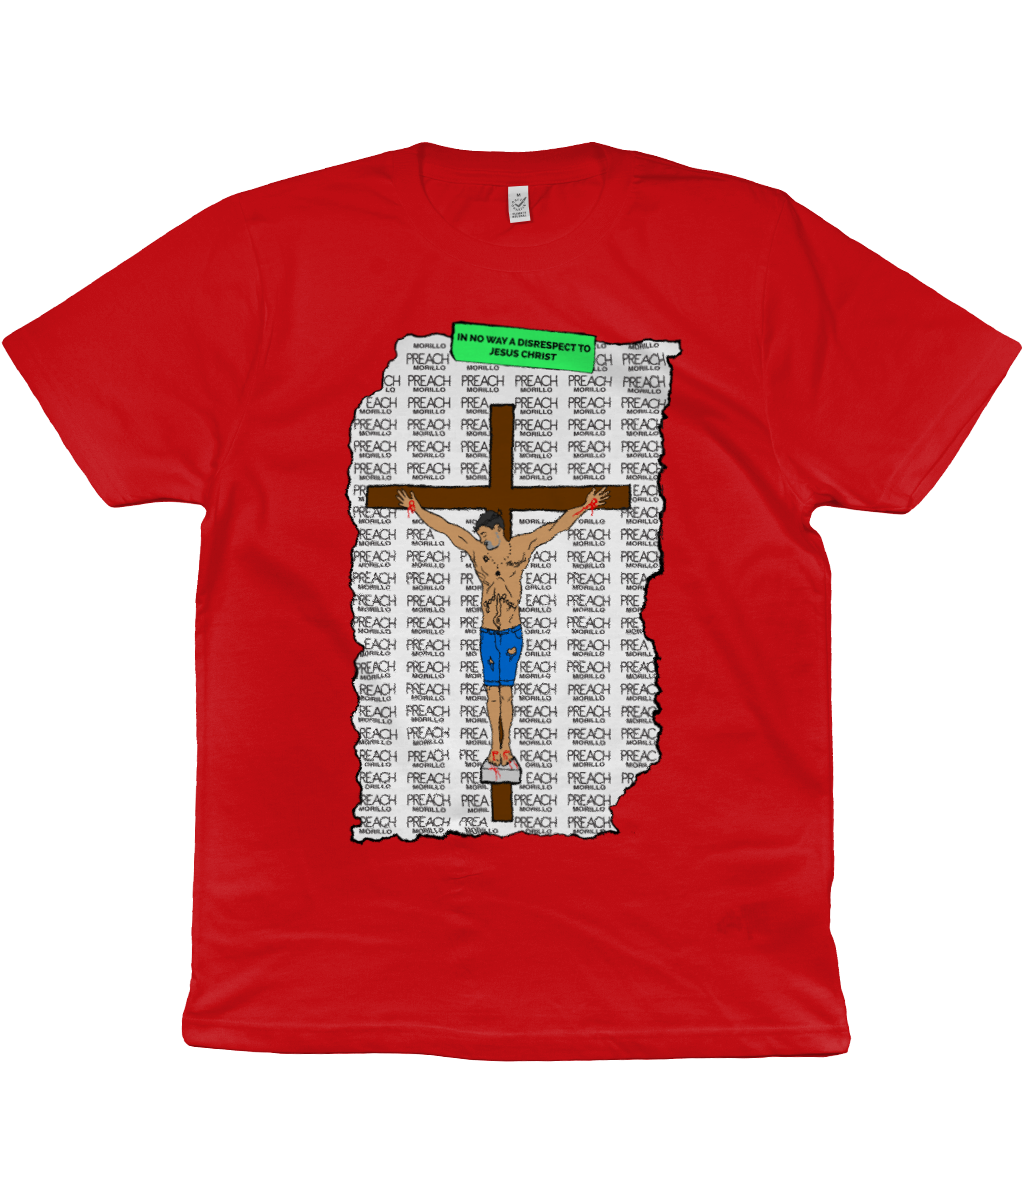 PREACH Crucifixion Graphic Jersey Tee Clothing - MORILLO ENTERPRISE